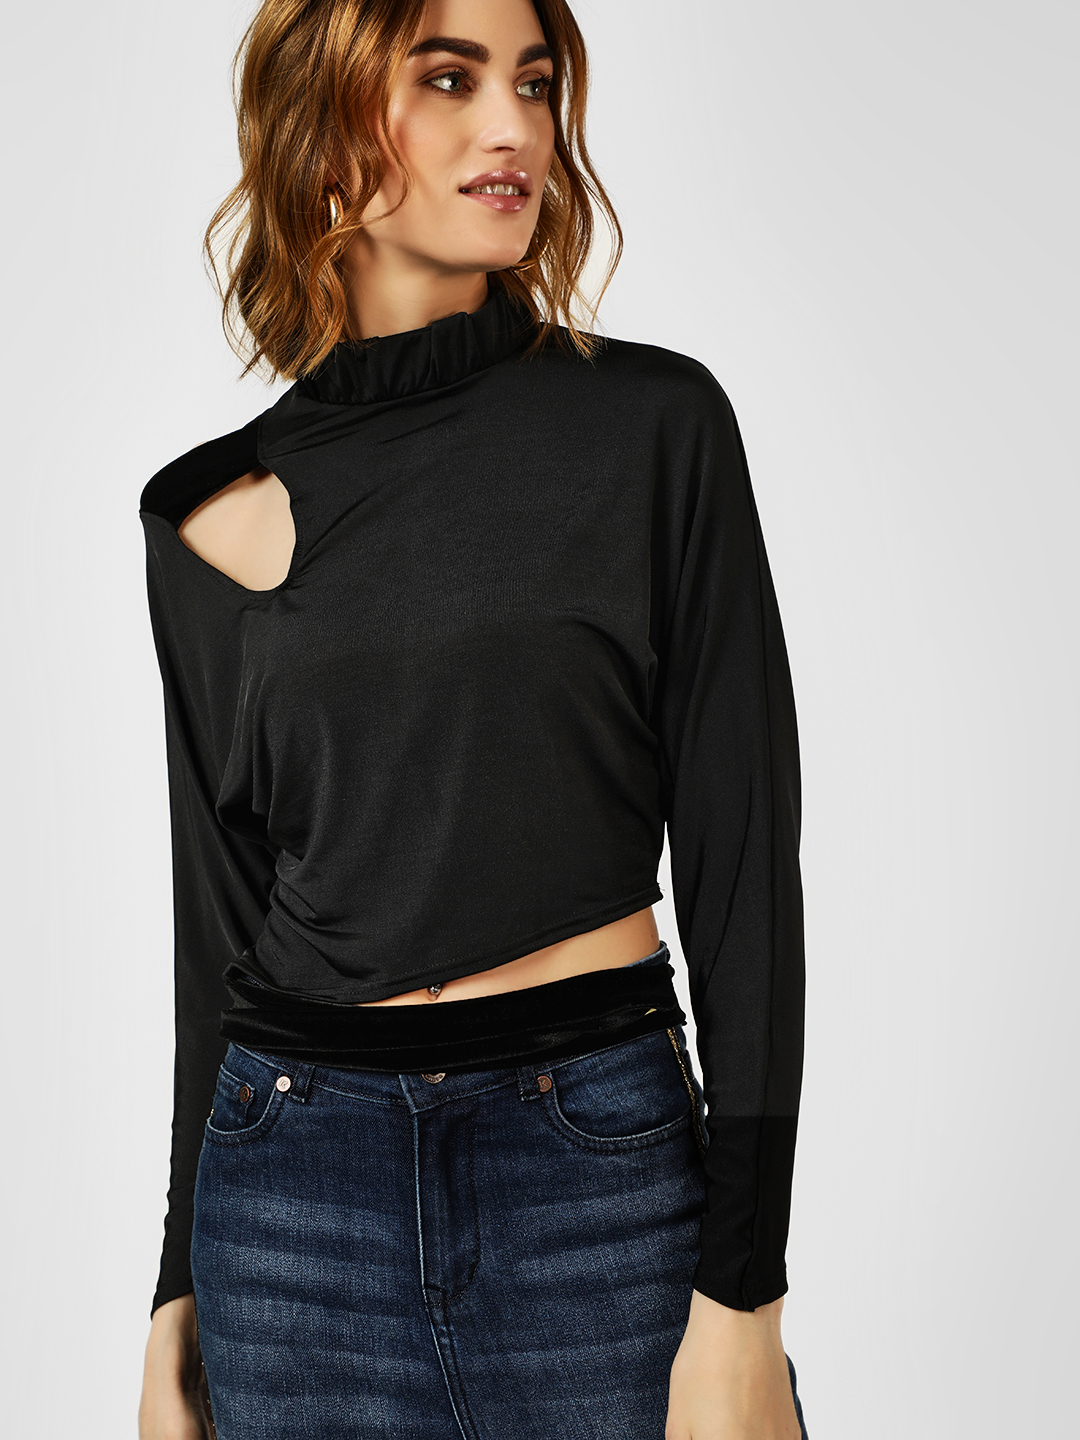 All Good Things Black Knot Crop Top With Cut Work 1